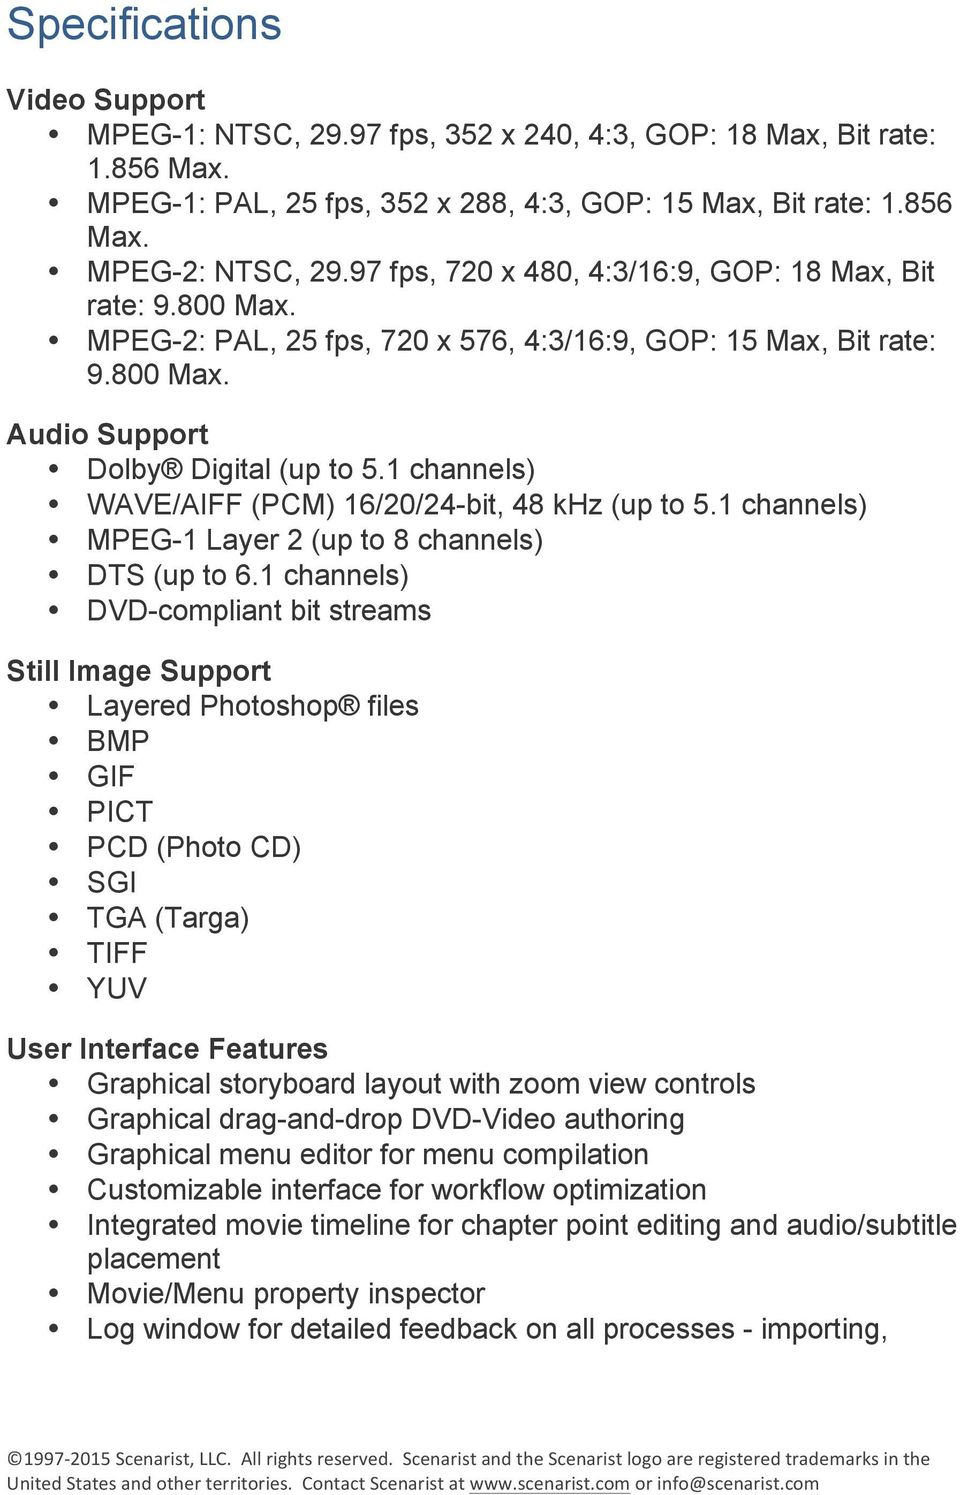 1 channels) WAVE/AIFF (PCM) 16/20/24-bit, 48 khz (up to 5.1 channels) MPEG-1 Layer 2 (up to 8 channels) DTS (up to 6.